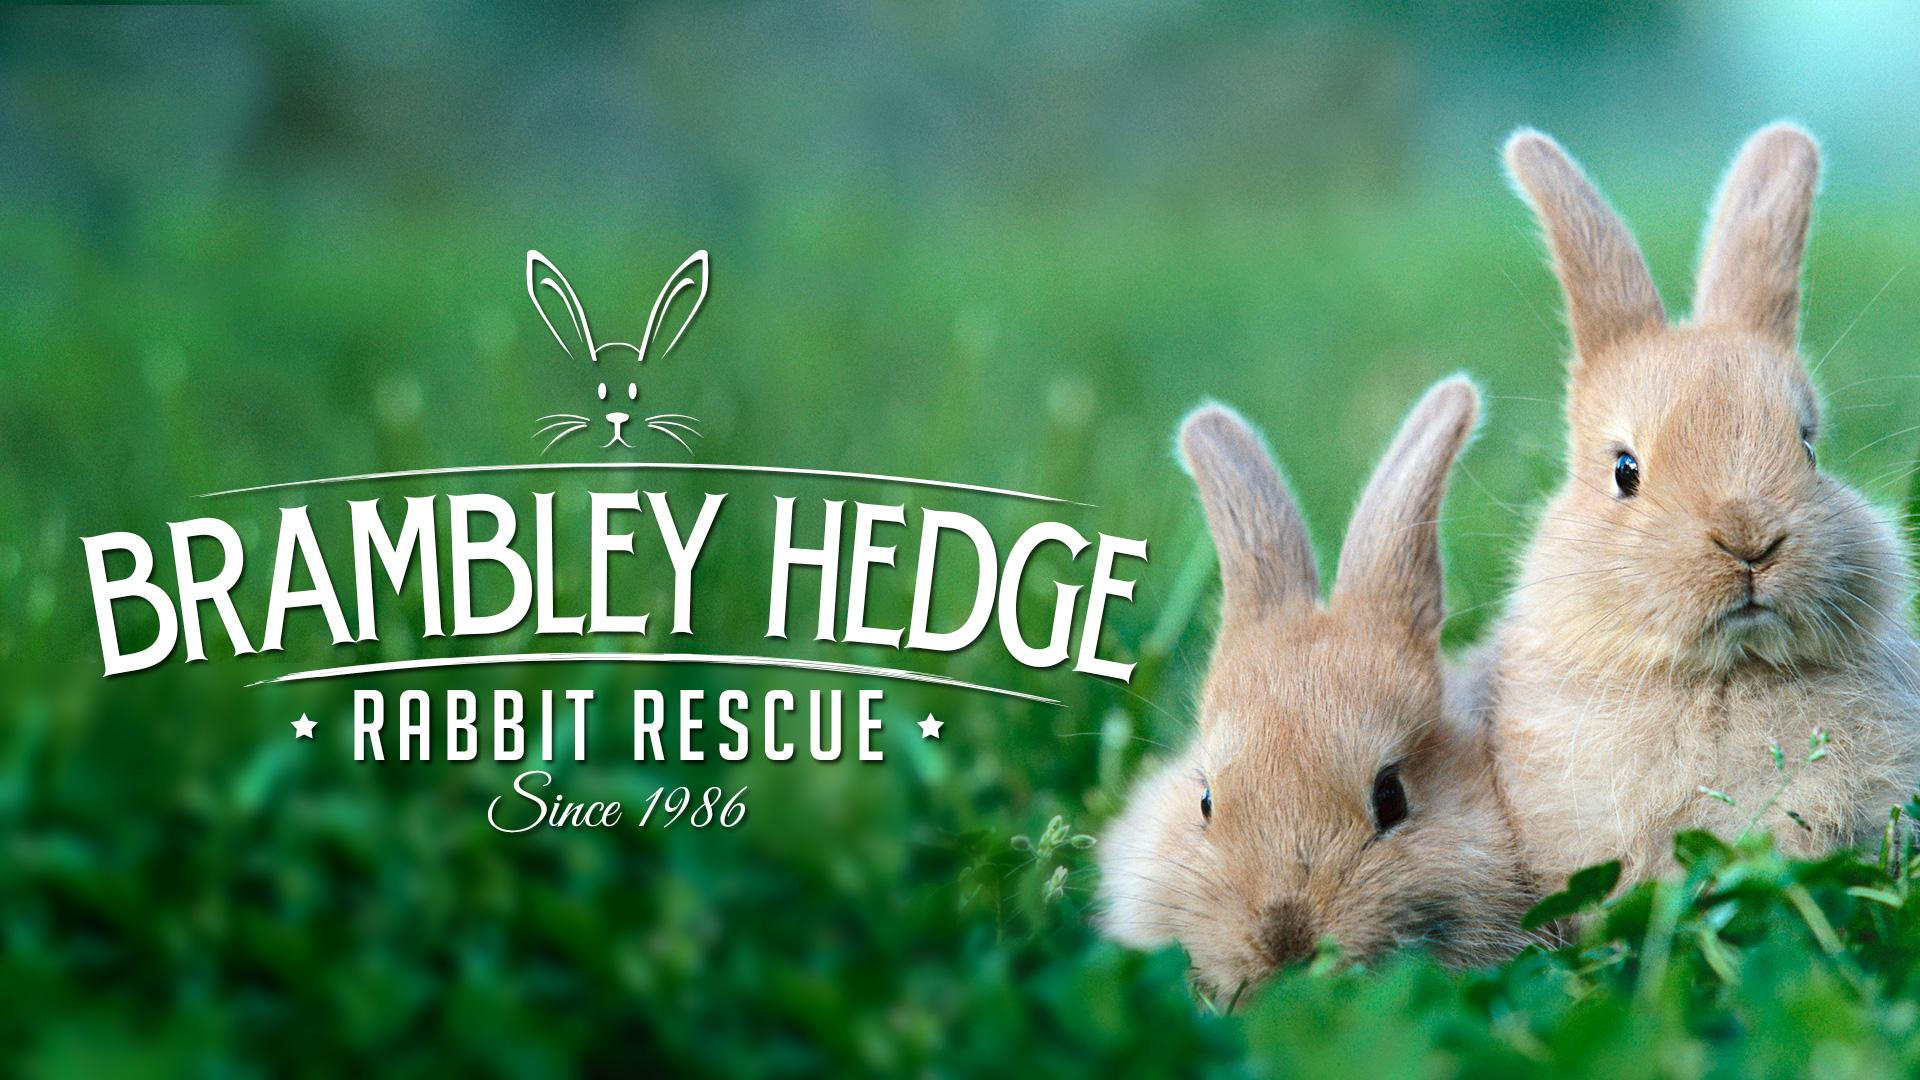 short essay about my pet rabbit Rabbit essay: an english essay on the rabbit for kids of class 1 to 3 the rabbit short essay for school students of grade 1, 2, 3 in english.